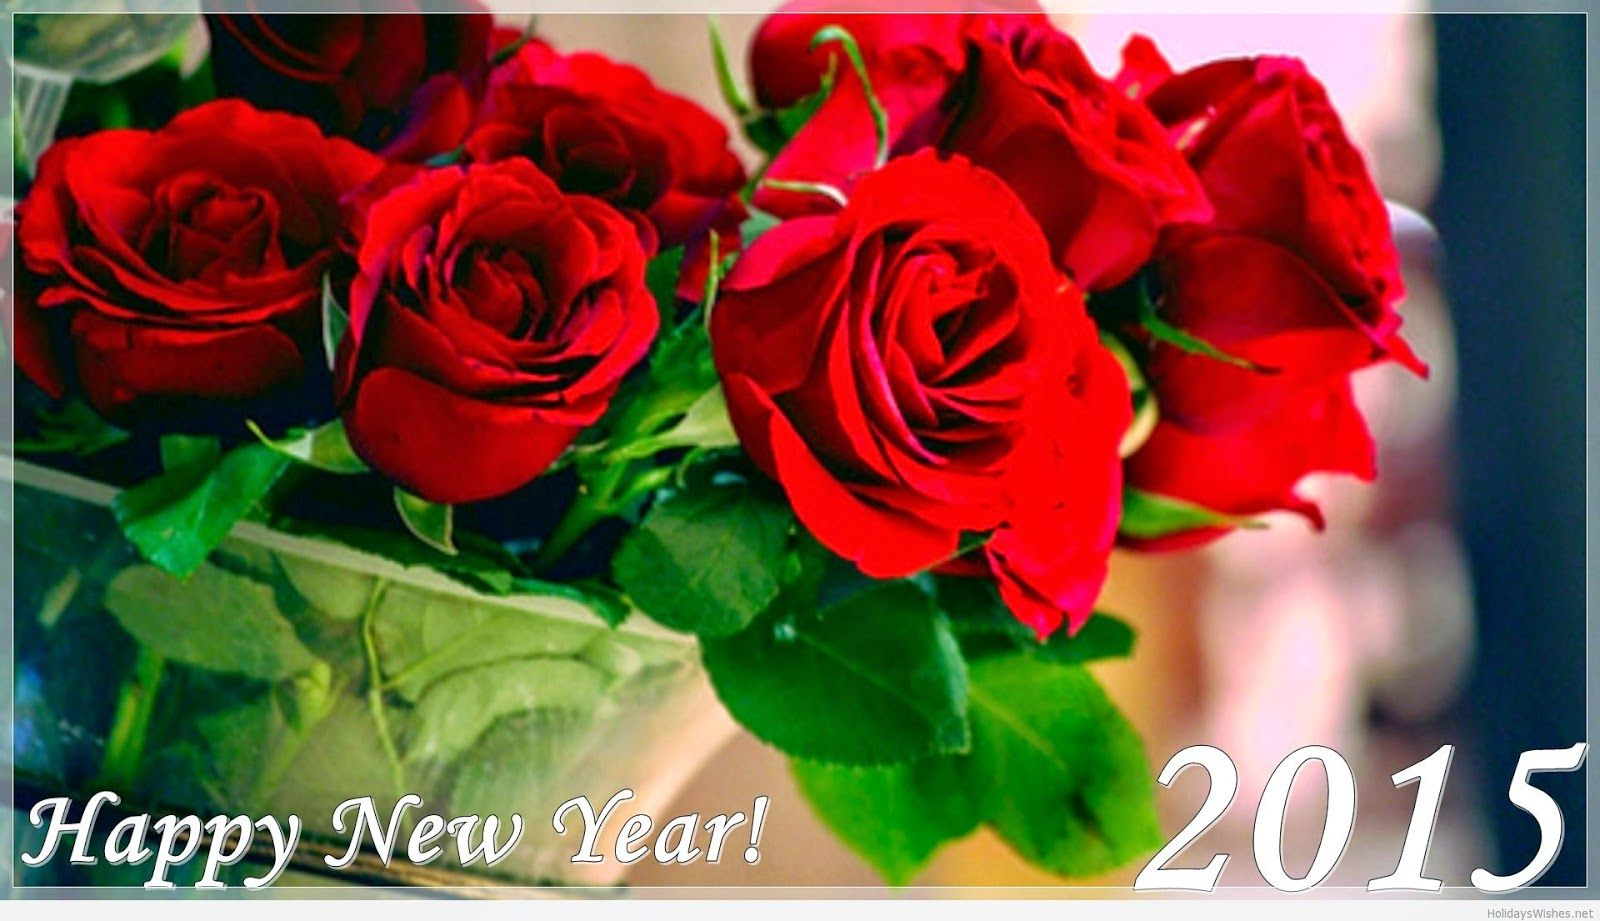 happy new year 2015 roses hd wallpaper | happy new year 2015